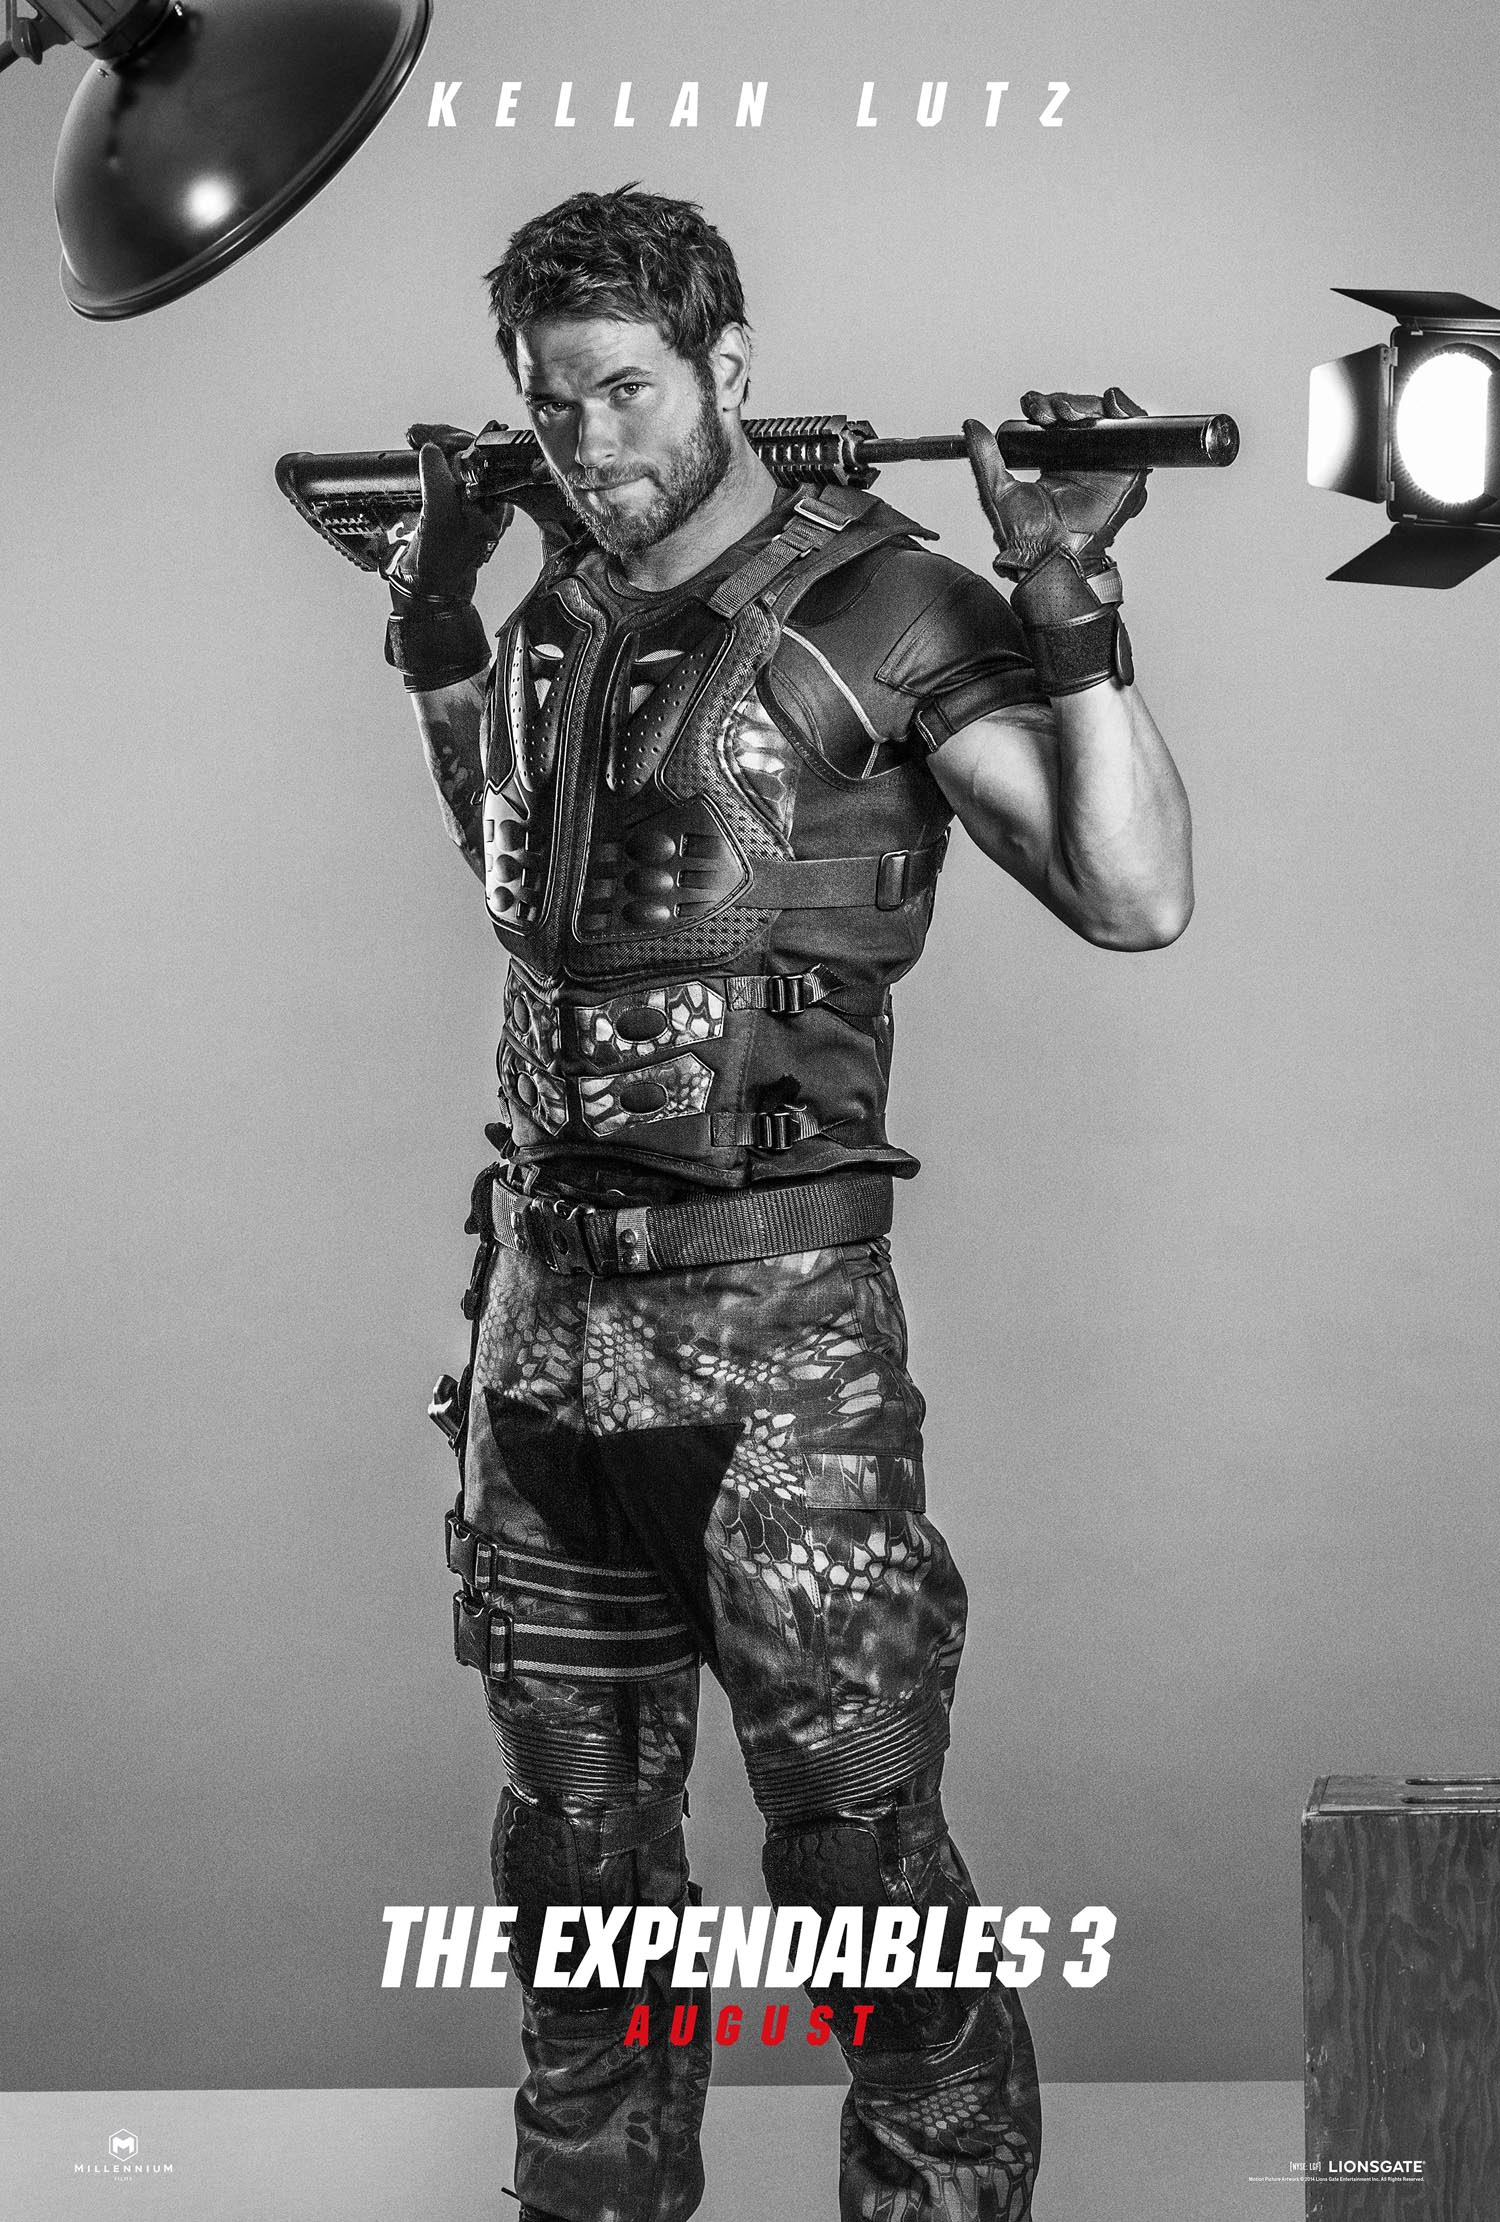 image - the expendables 3 smilee poster | expendables wiki